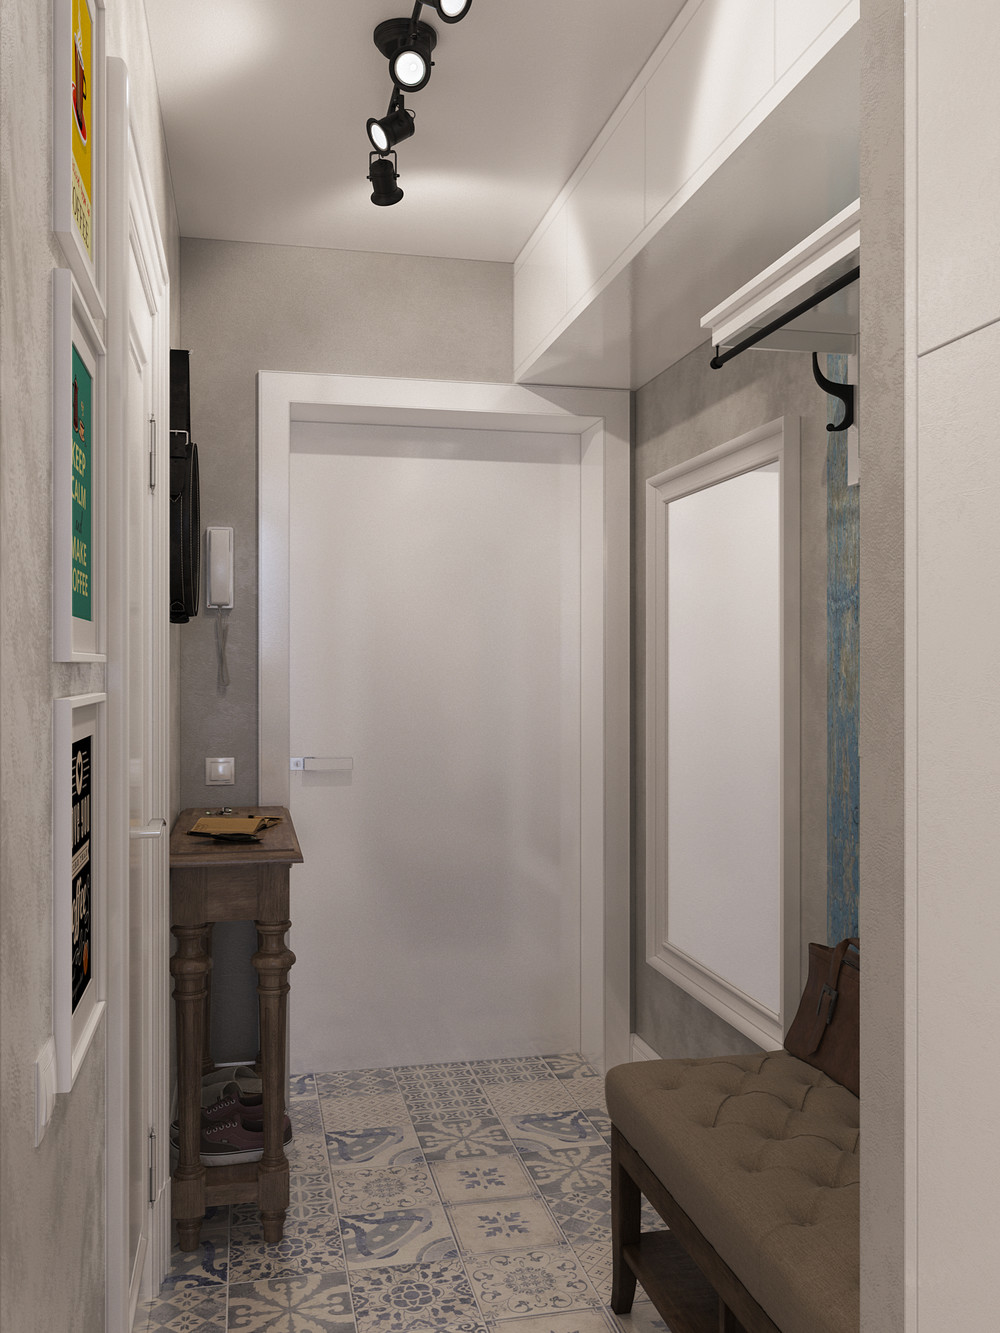 Foyer Design Plans : Designing for super small spaces micro apartments